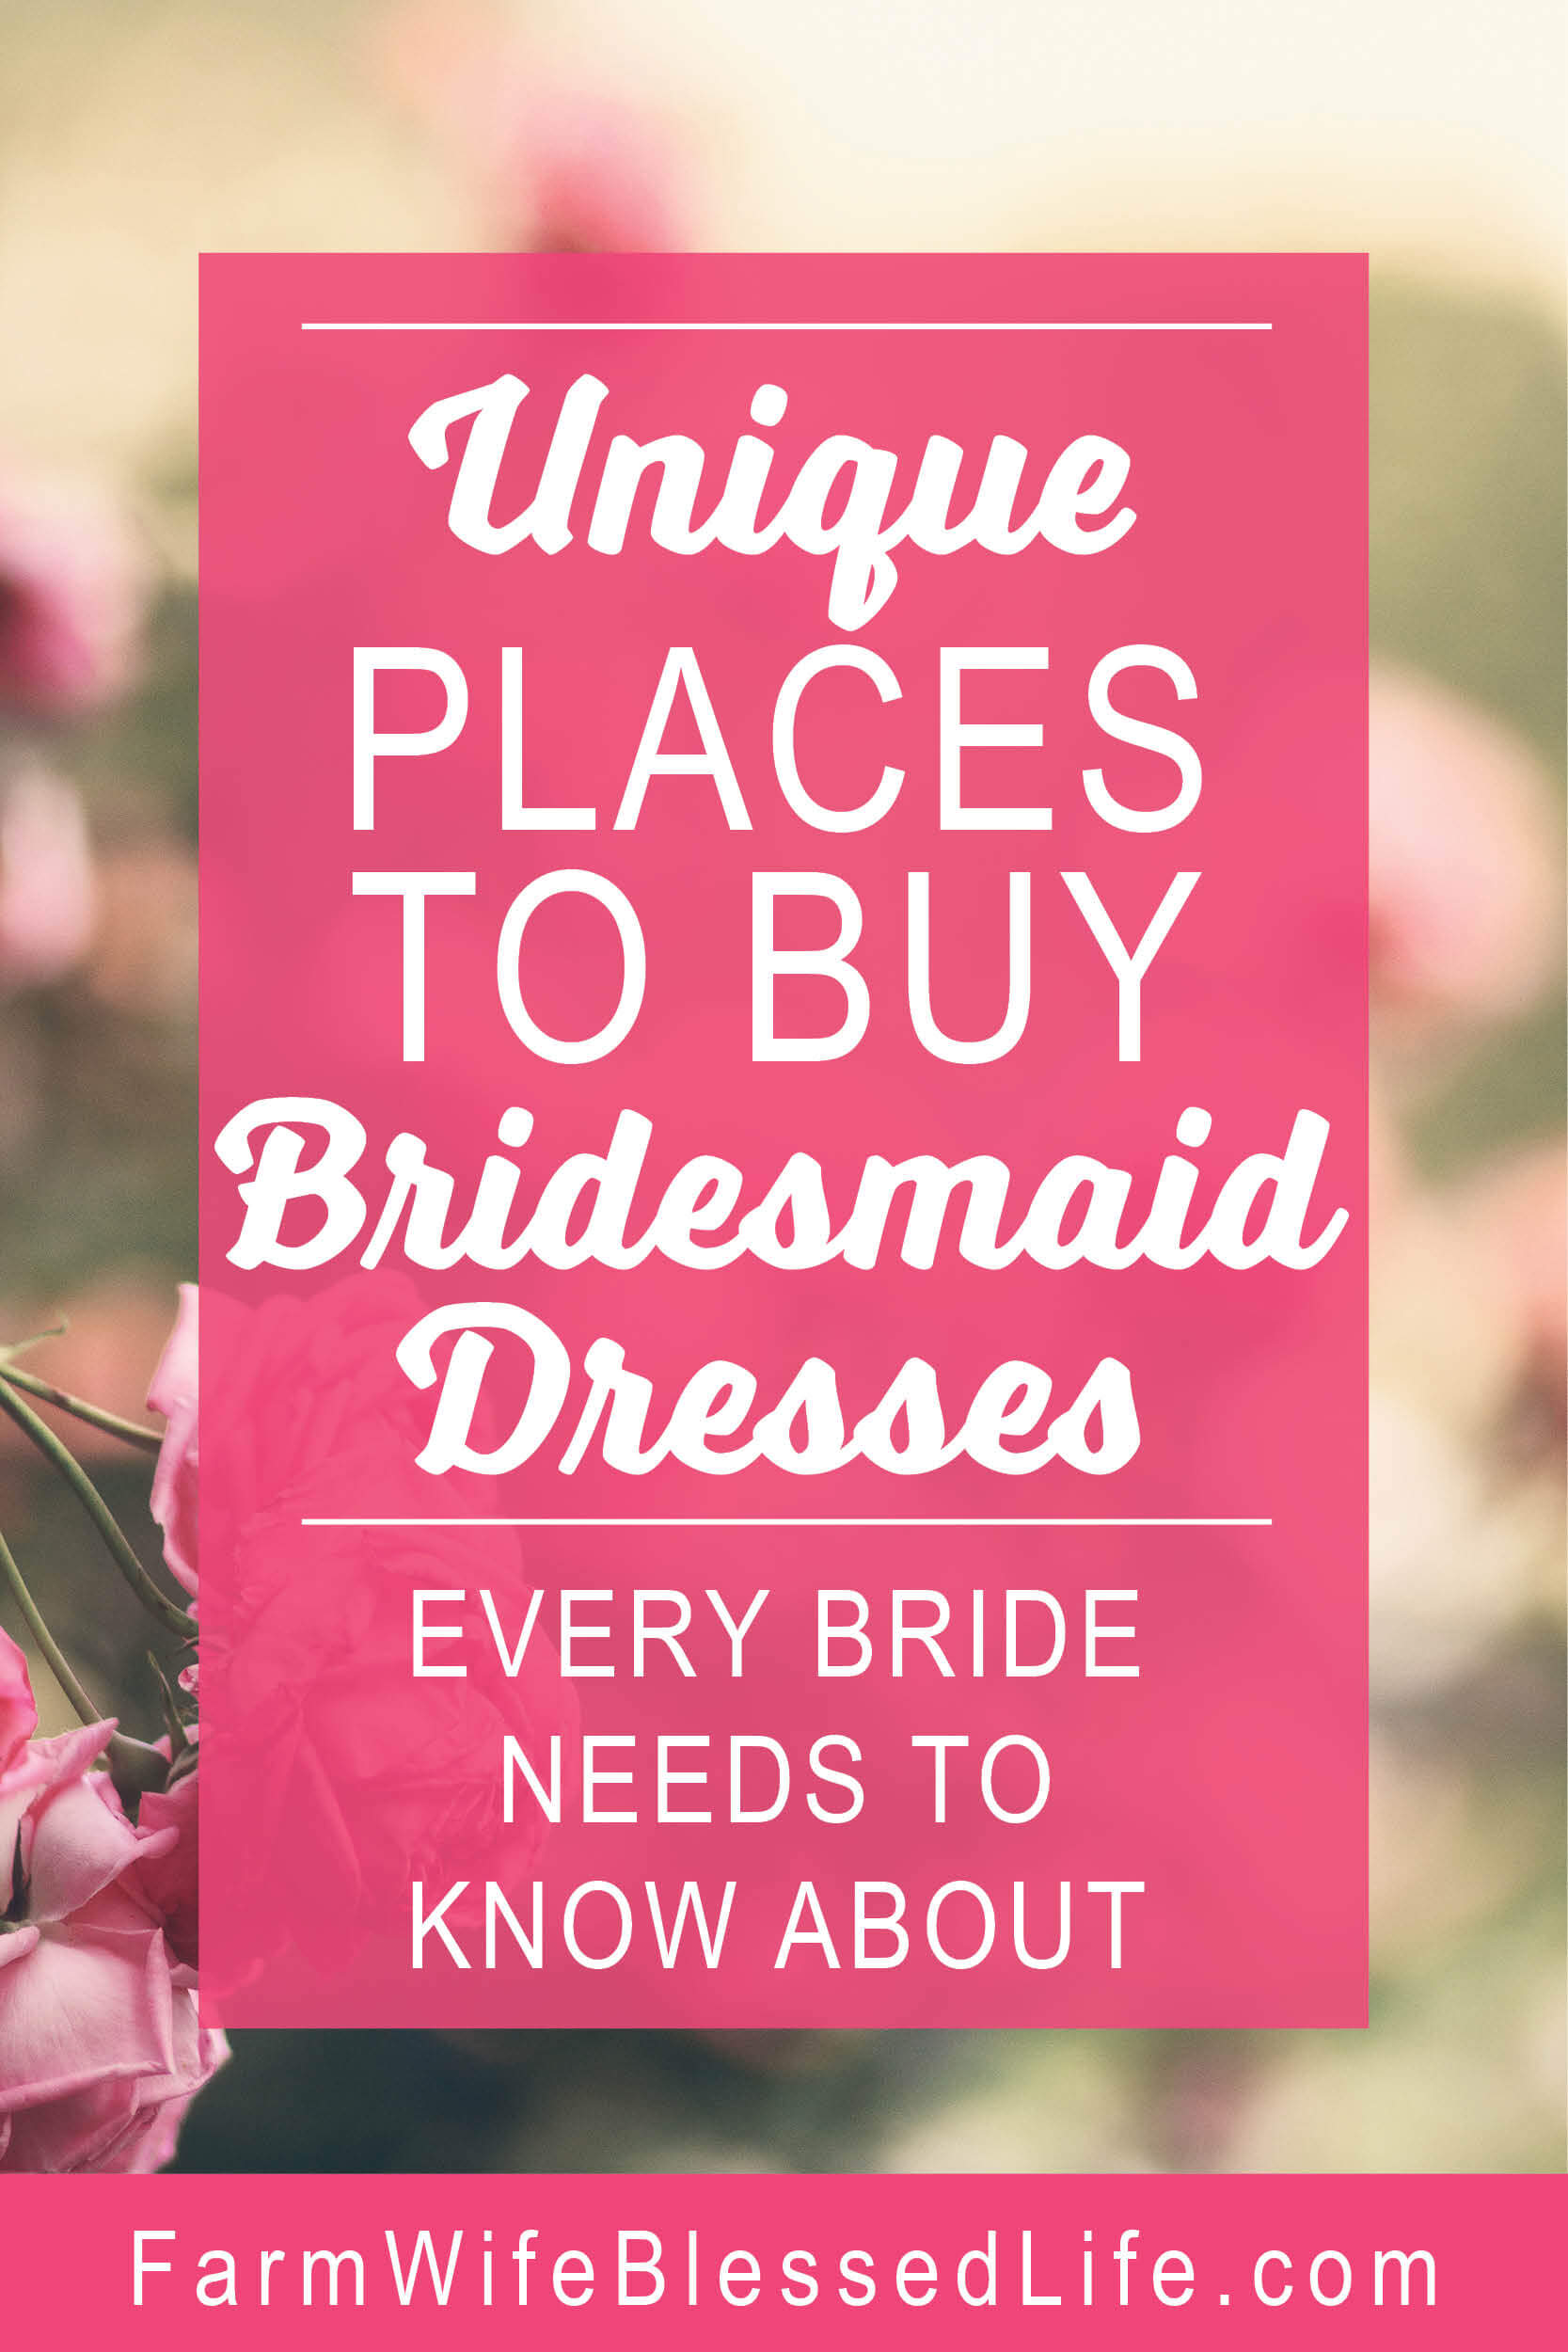 Unique Places to Buy Bridesmaid Dresses Every Bride Needs to Know About